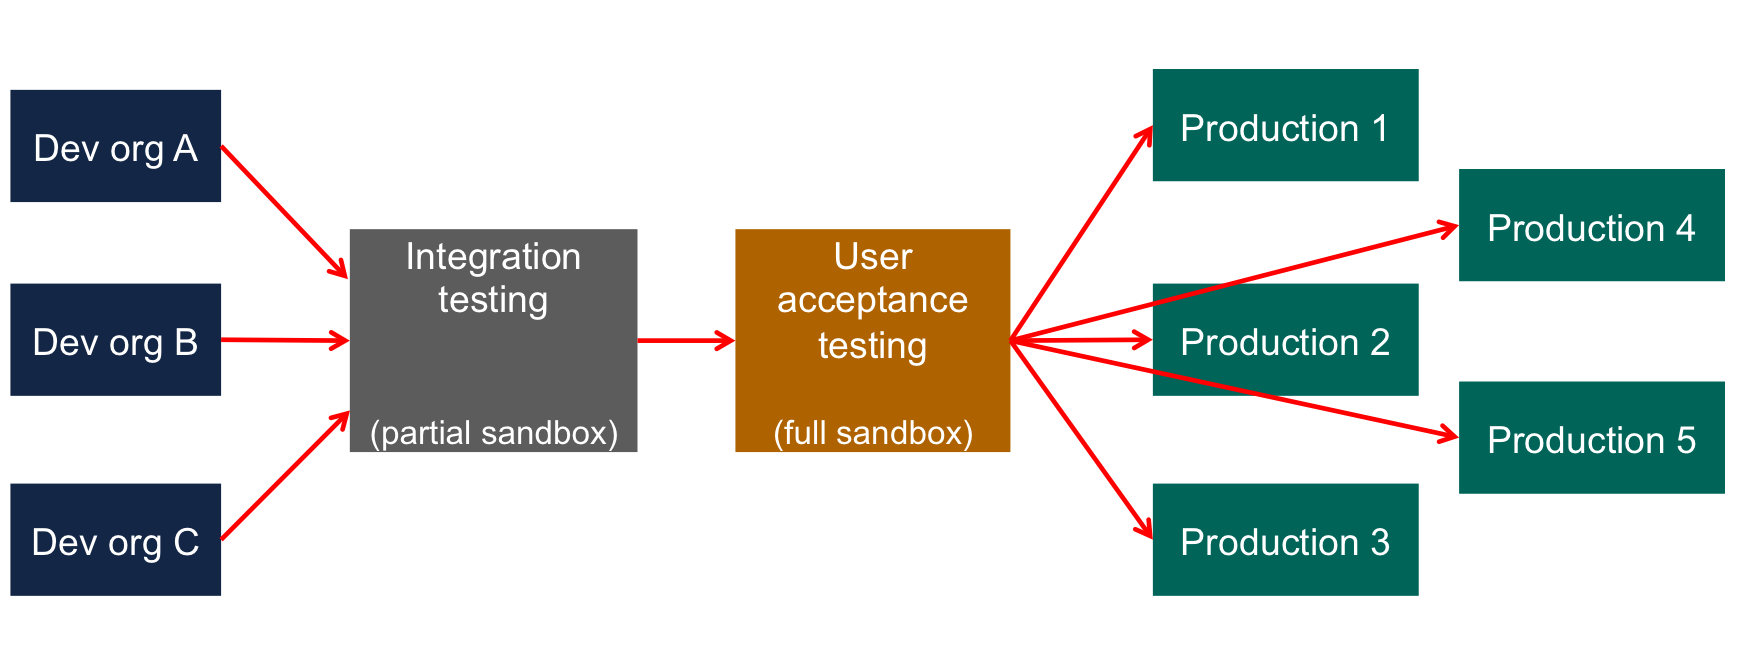 Deploying app configurations in an enterprise software development life cycle